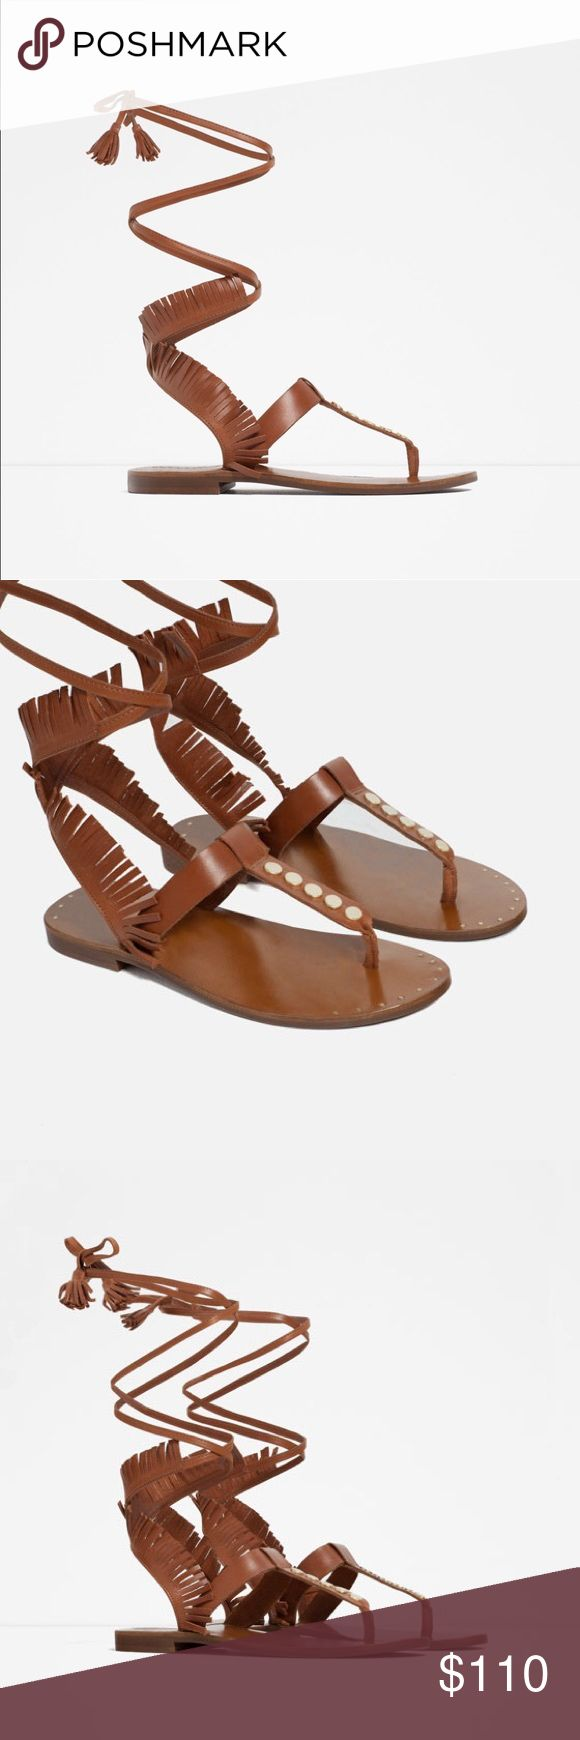 Zara Fringe Leather Gladiator Sandals Dust bag included Zara Shoes Lace Up Boots